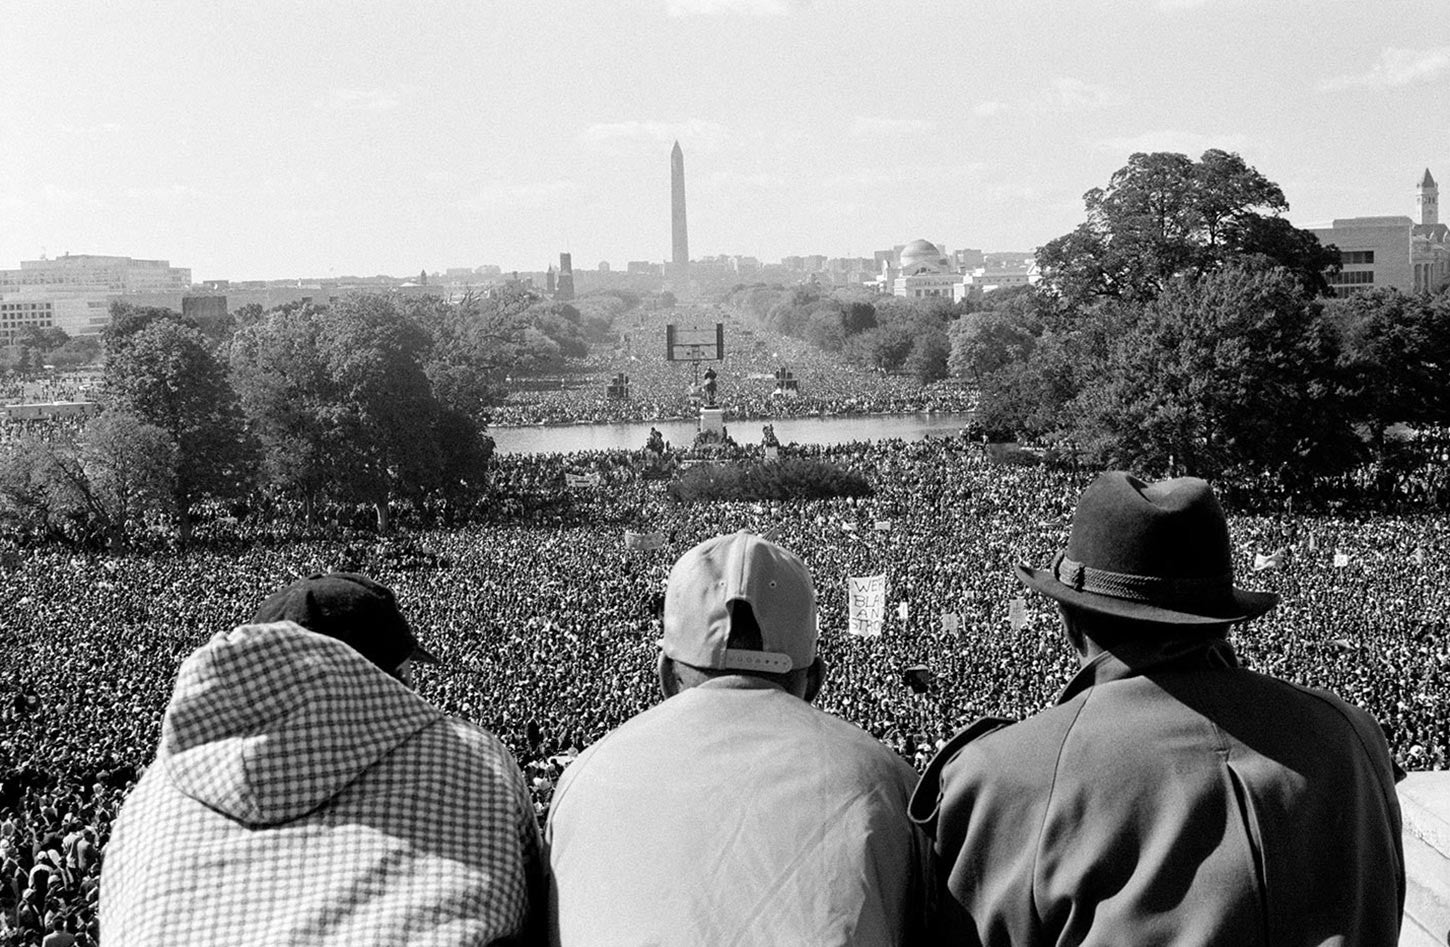 The Million Man March. Washington D.C., 1995.